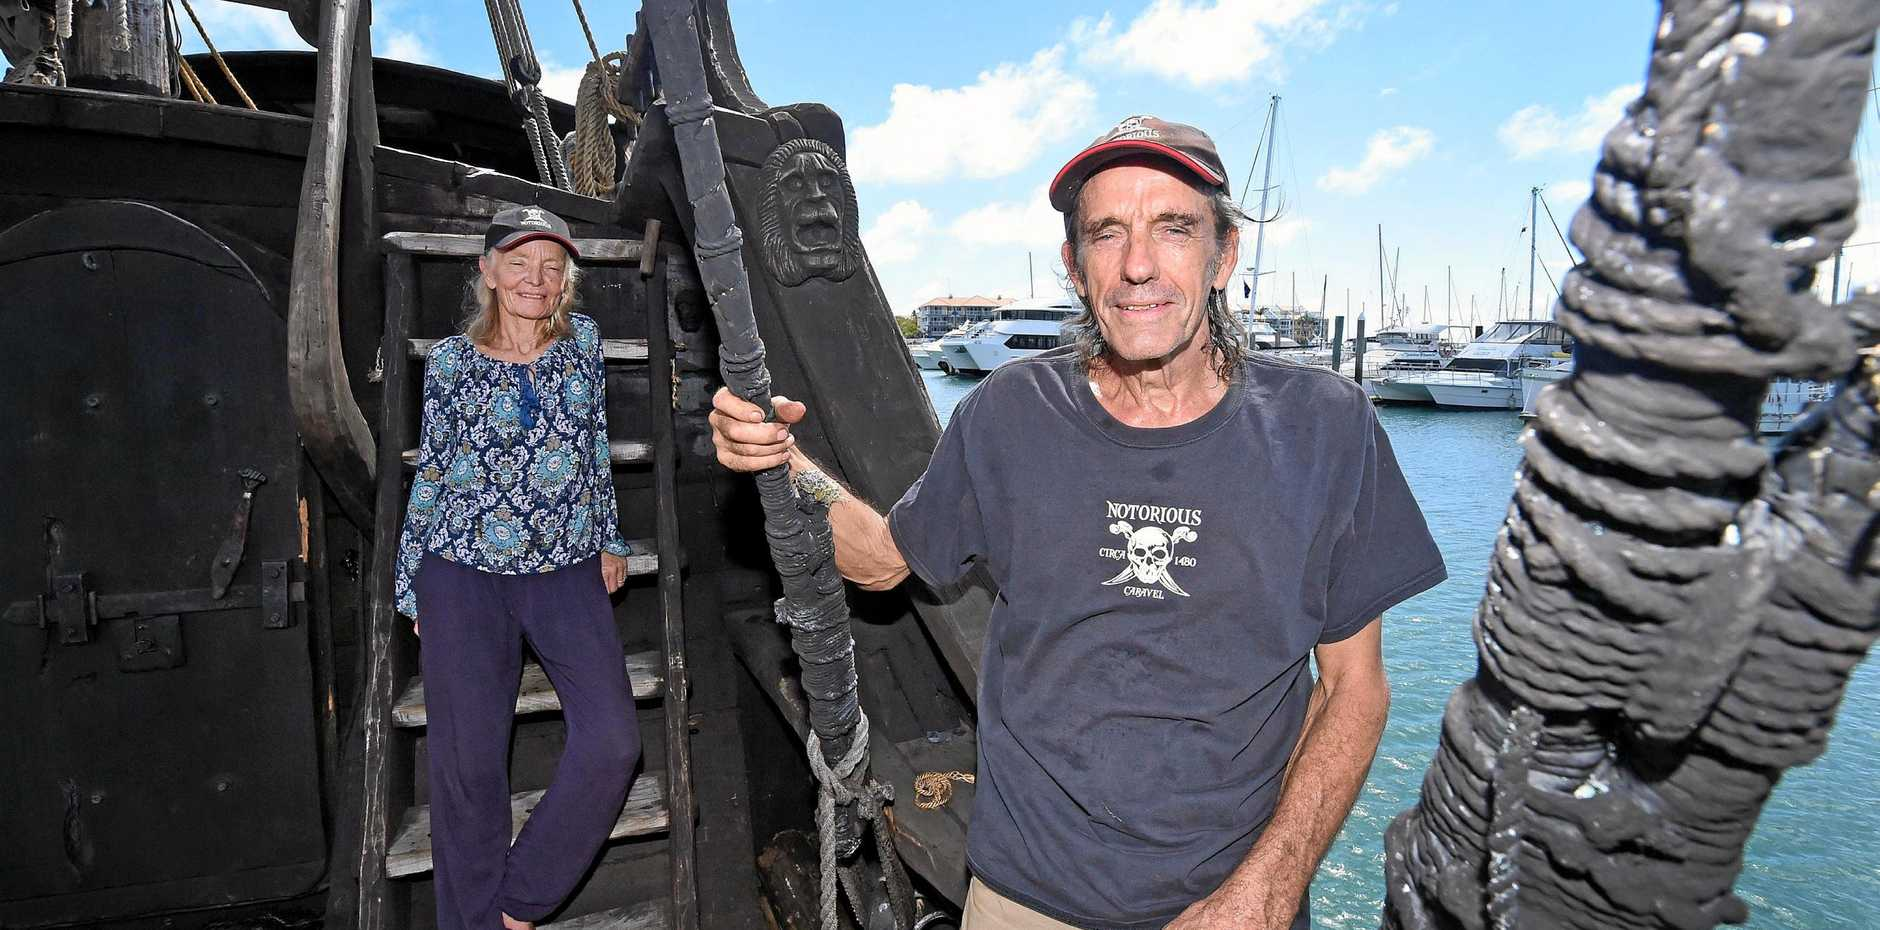 SAILING TALE: Owners Graeme and Felicity Wylie aboard the ship  Notorious .